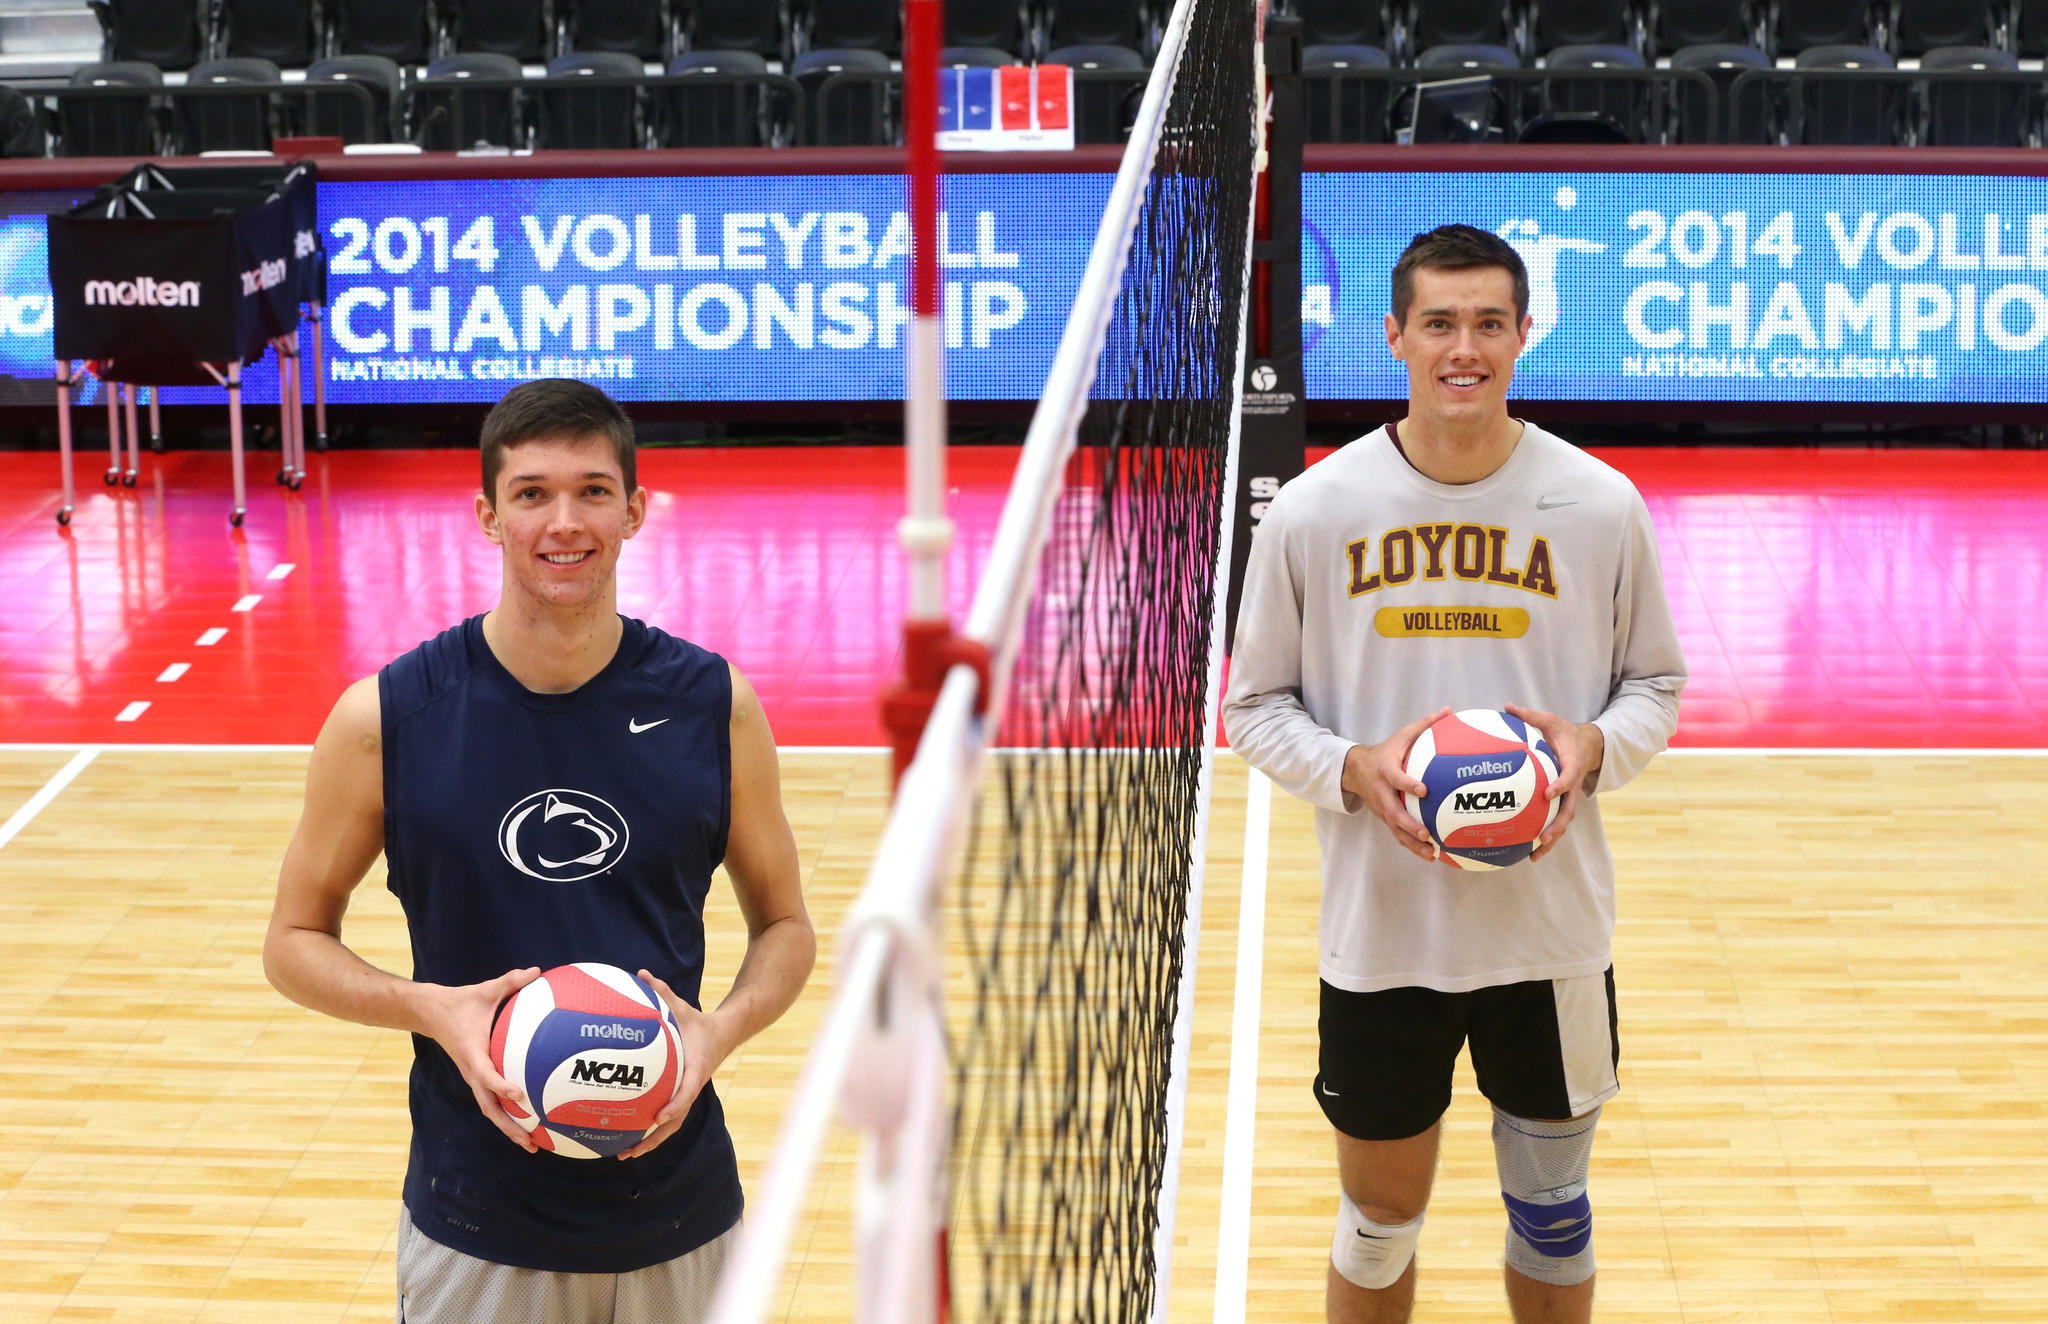 Penn State's Matt Callaway (left) and Loyola's Thomas Jaeschke.